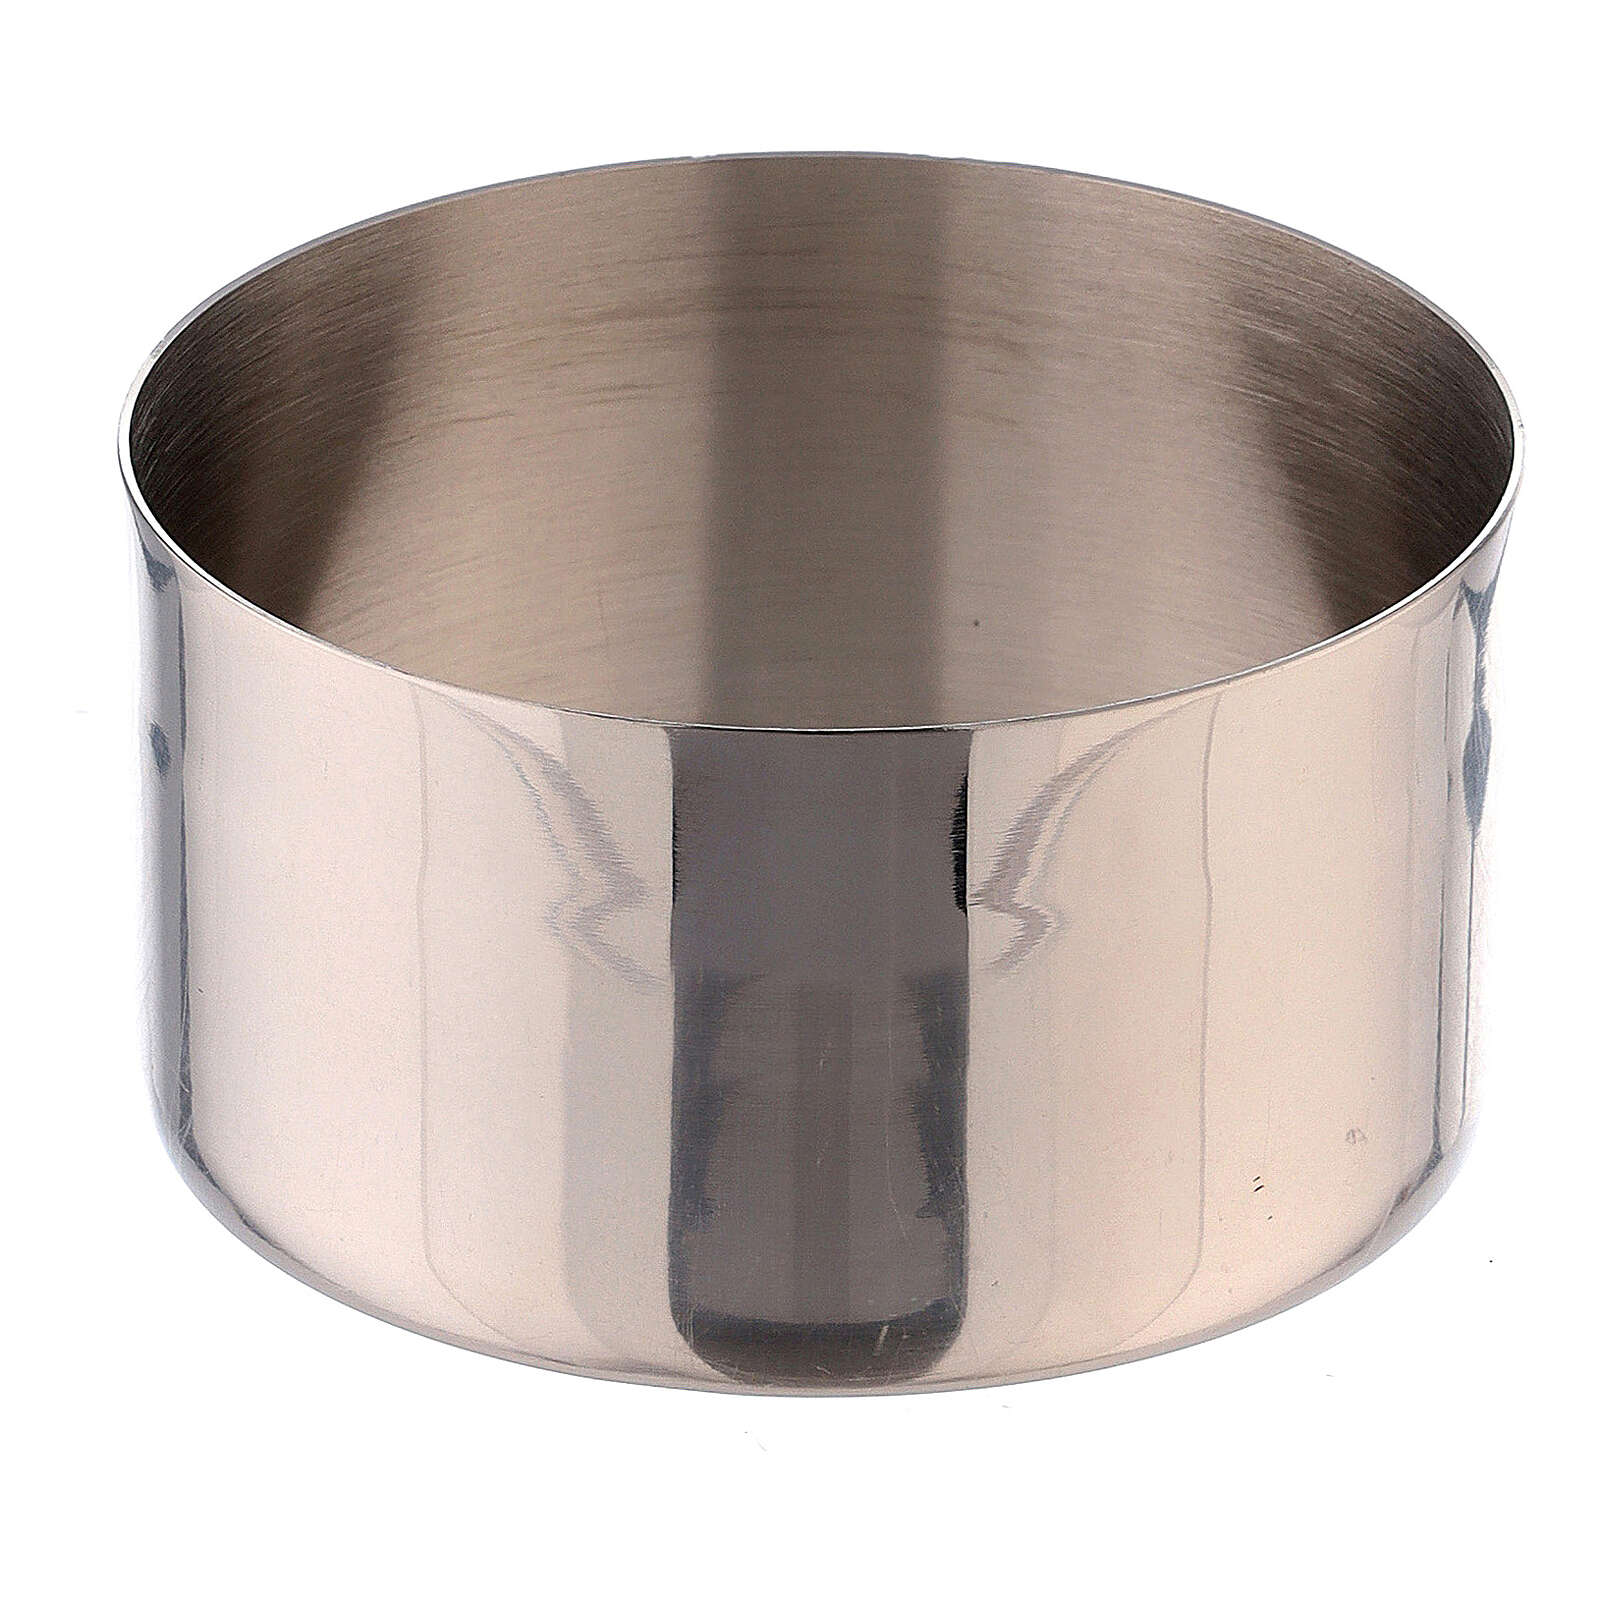 Candle ring 2 in nickel-plated brass 4